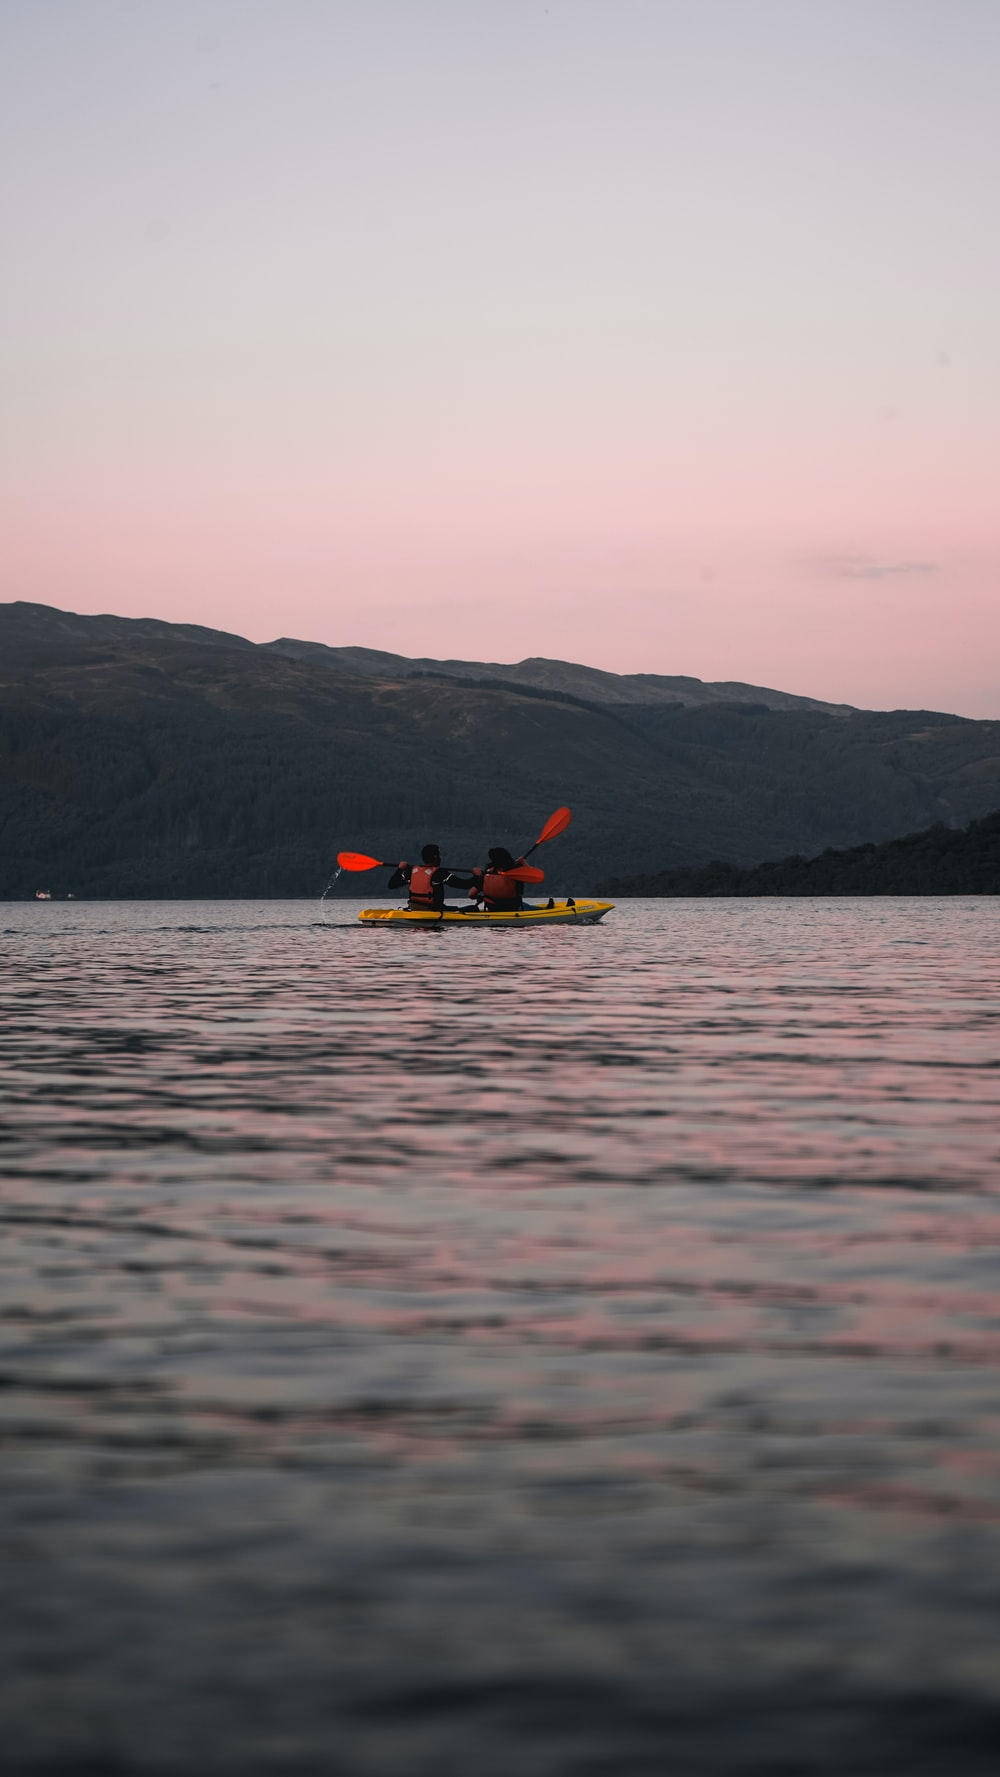 photography of two person riding kayak during daytime